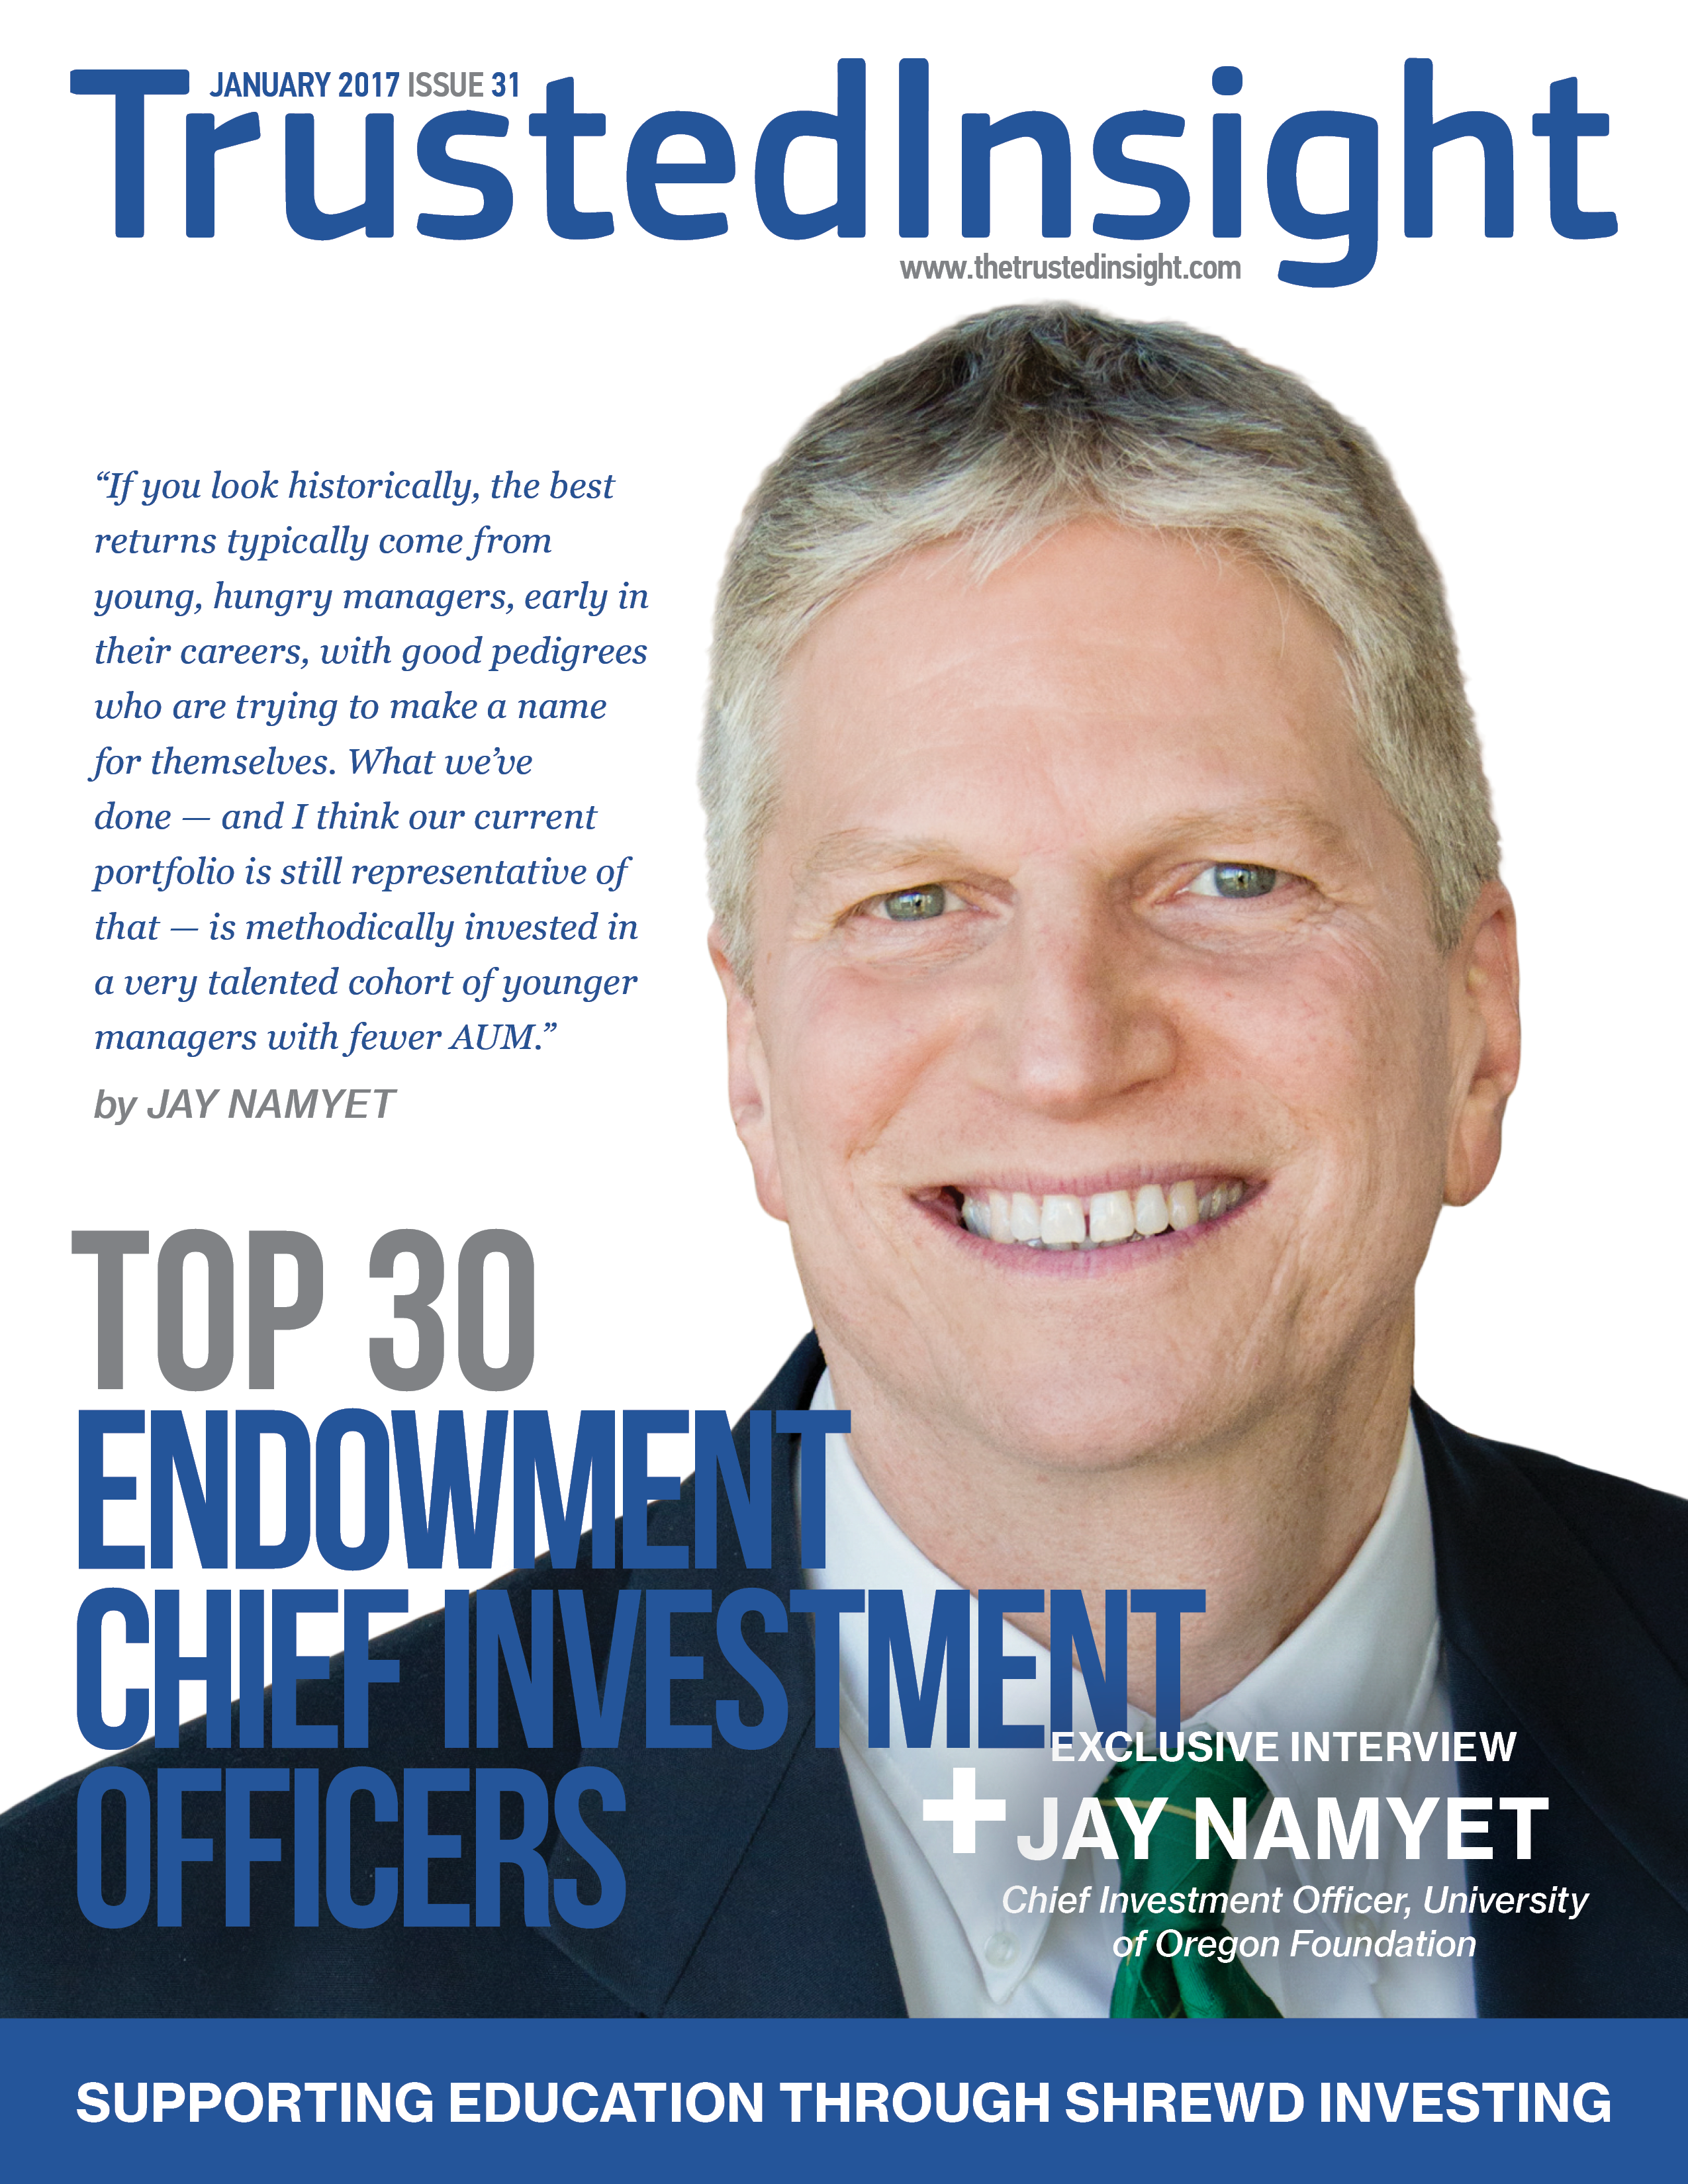 Trusted Insight | Top 30 Endowment Chief Investment Officers